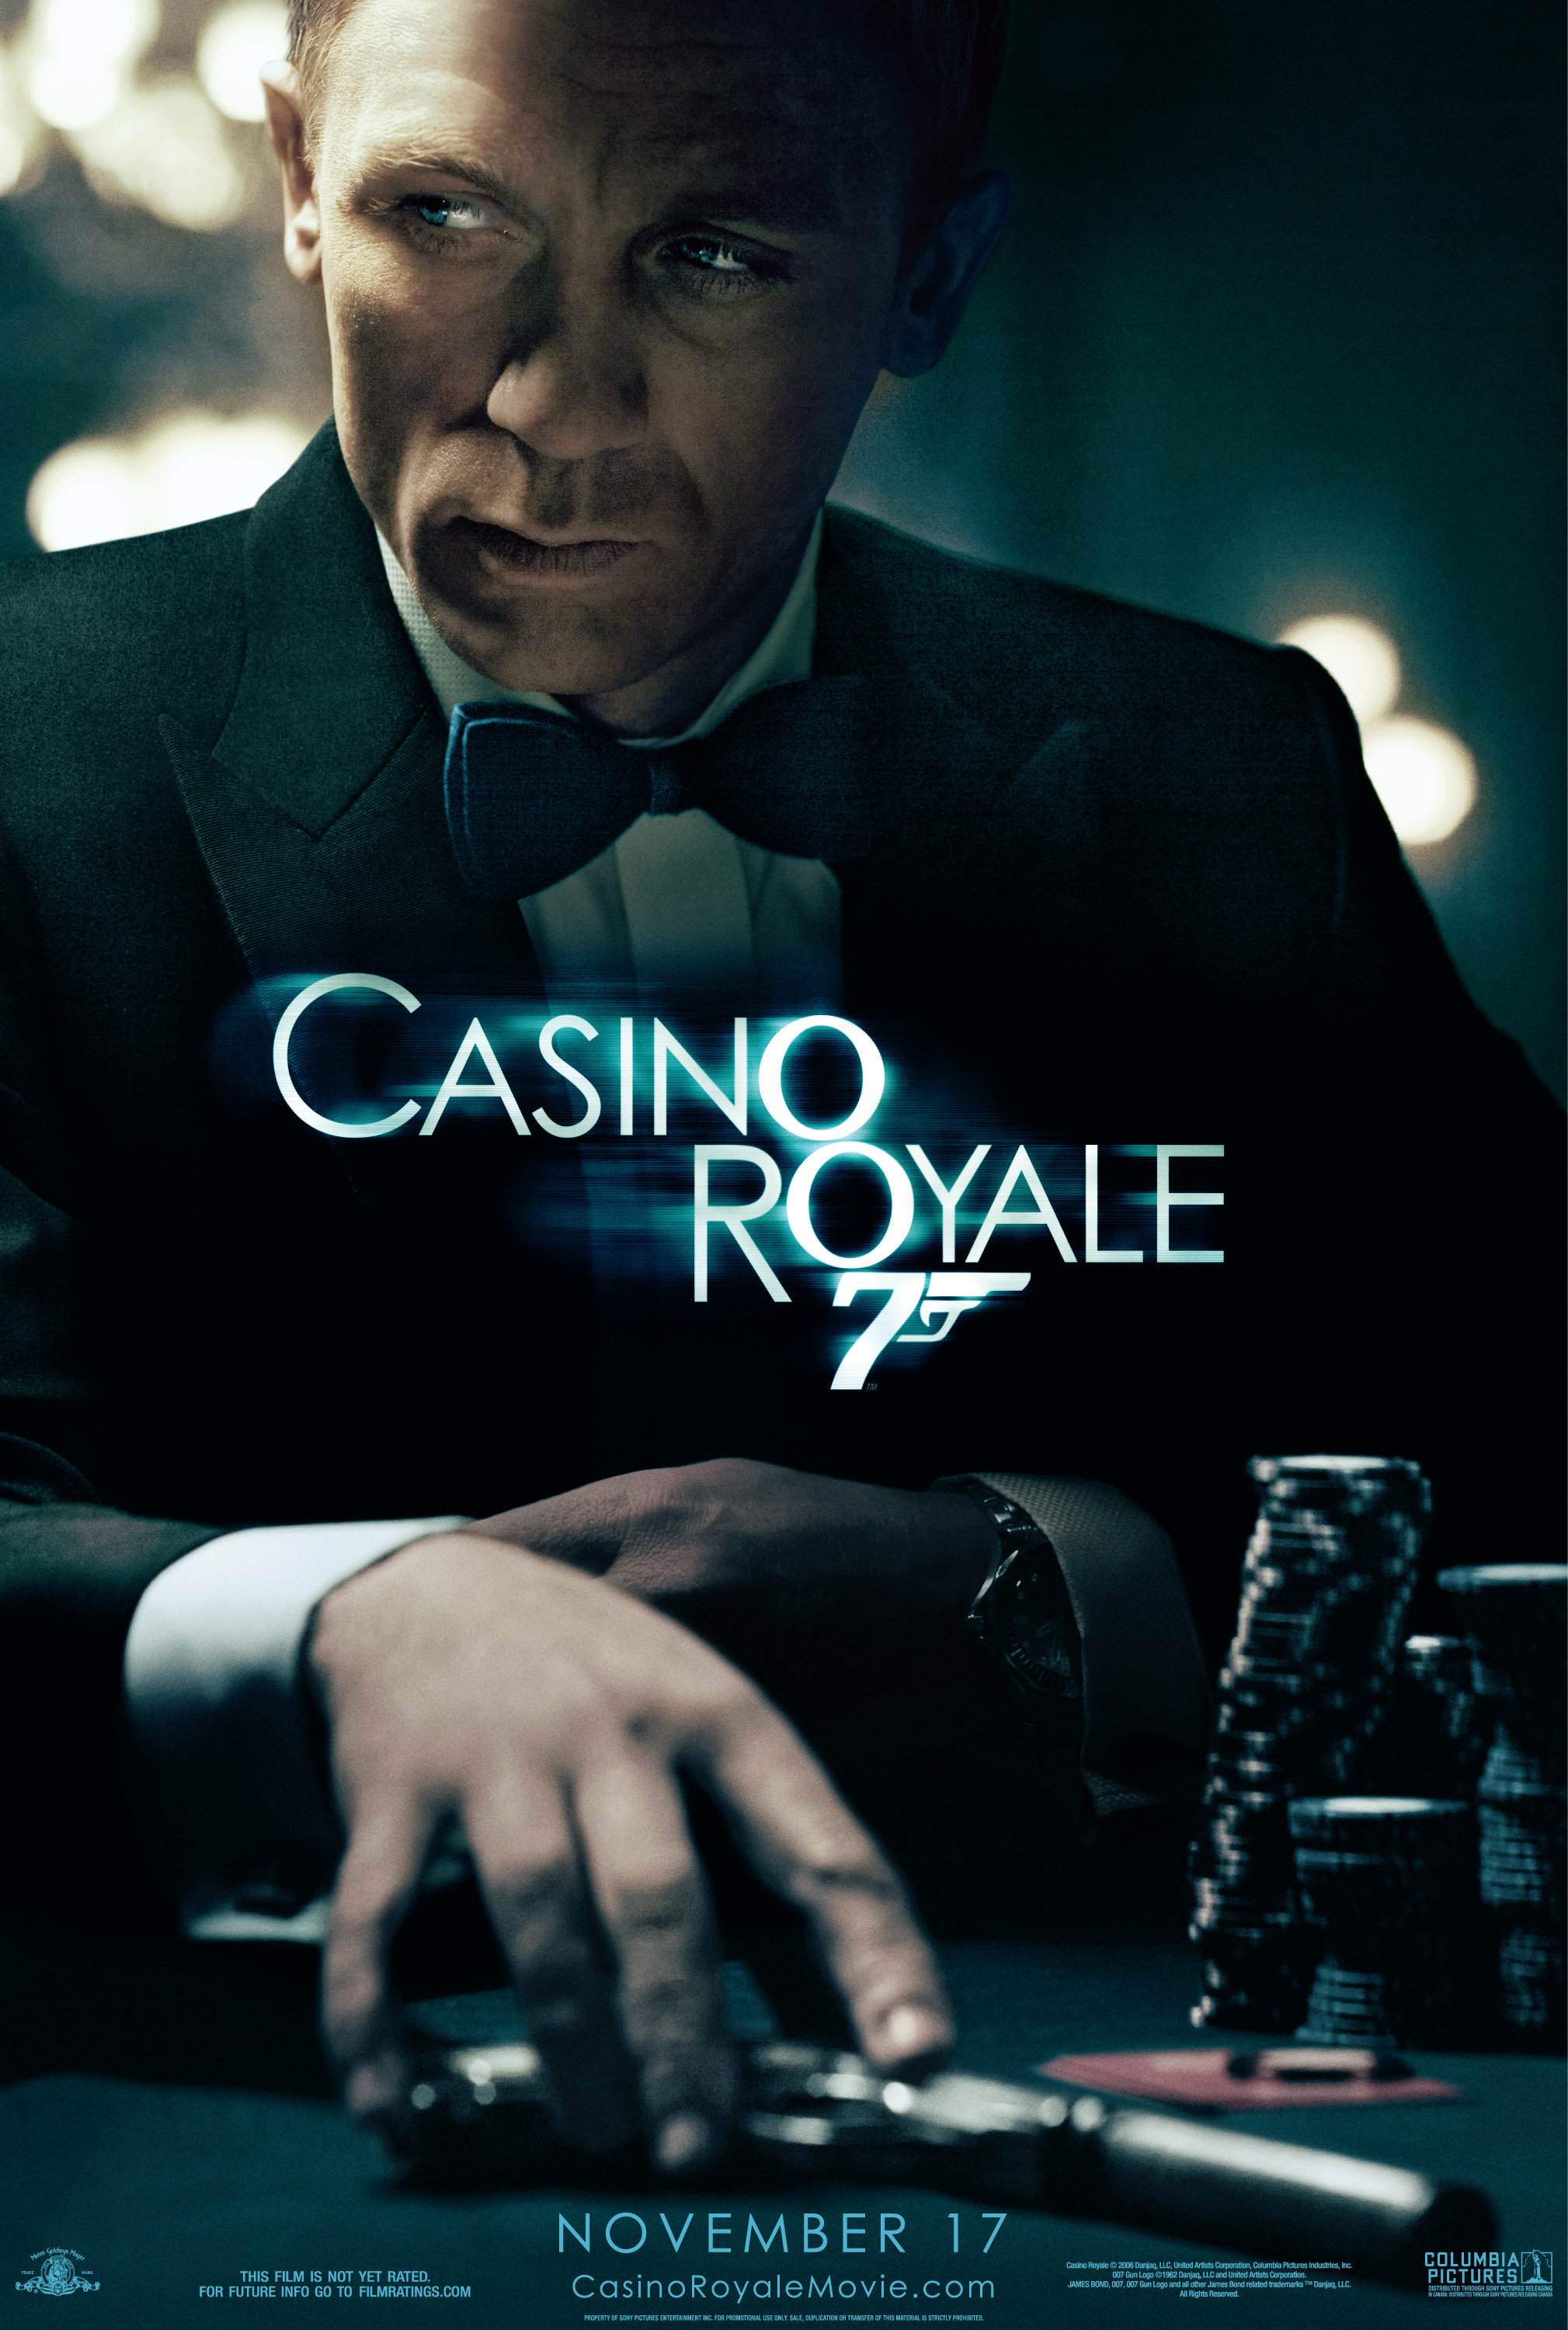 casino royale movie online free book of ra game